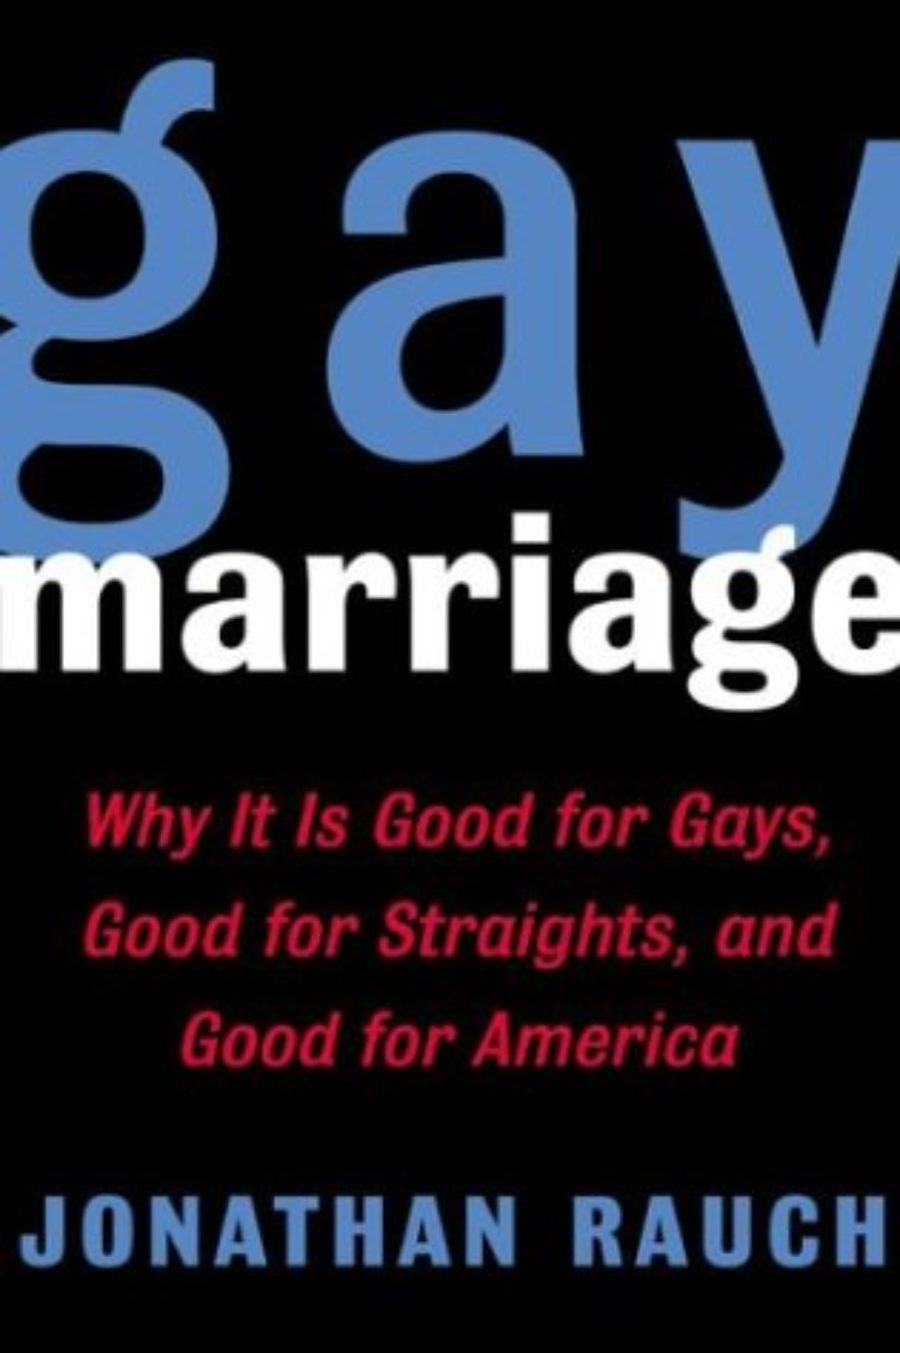 Cover of Gay Marriage: Why It Is Good for Gays, Good for Straights, and Good for America